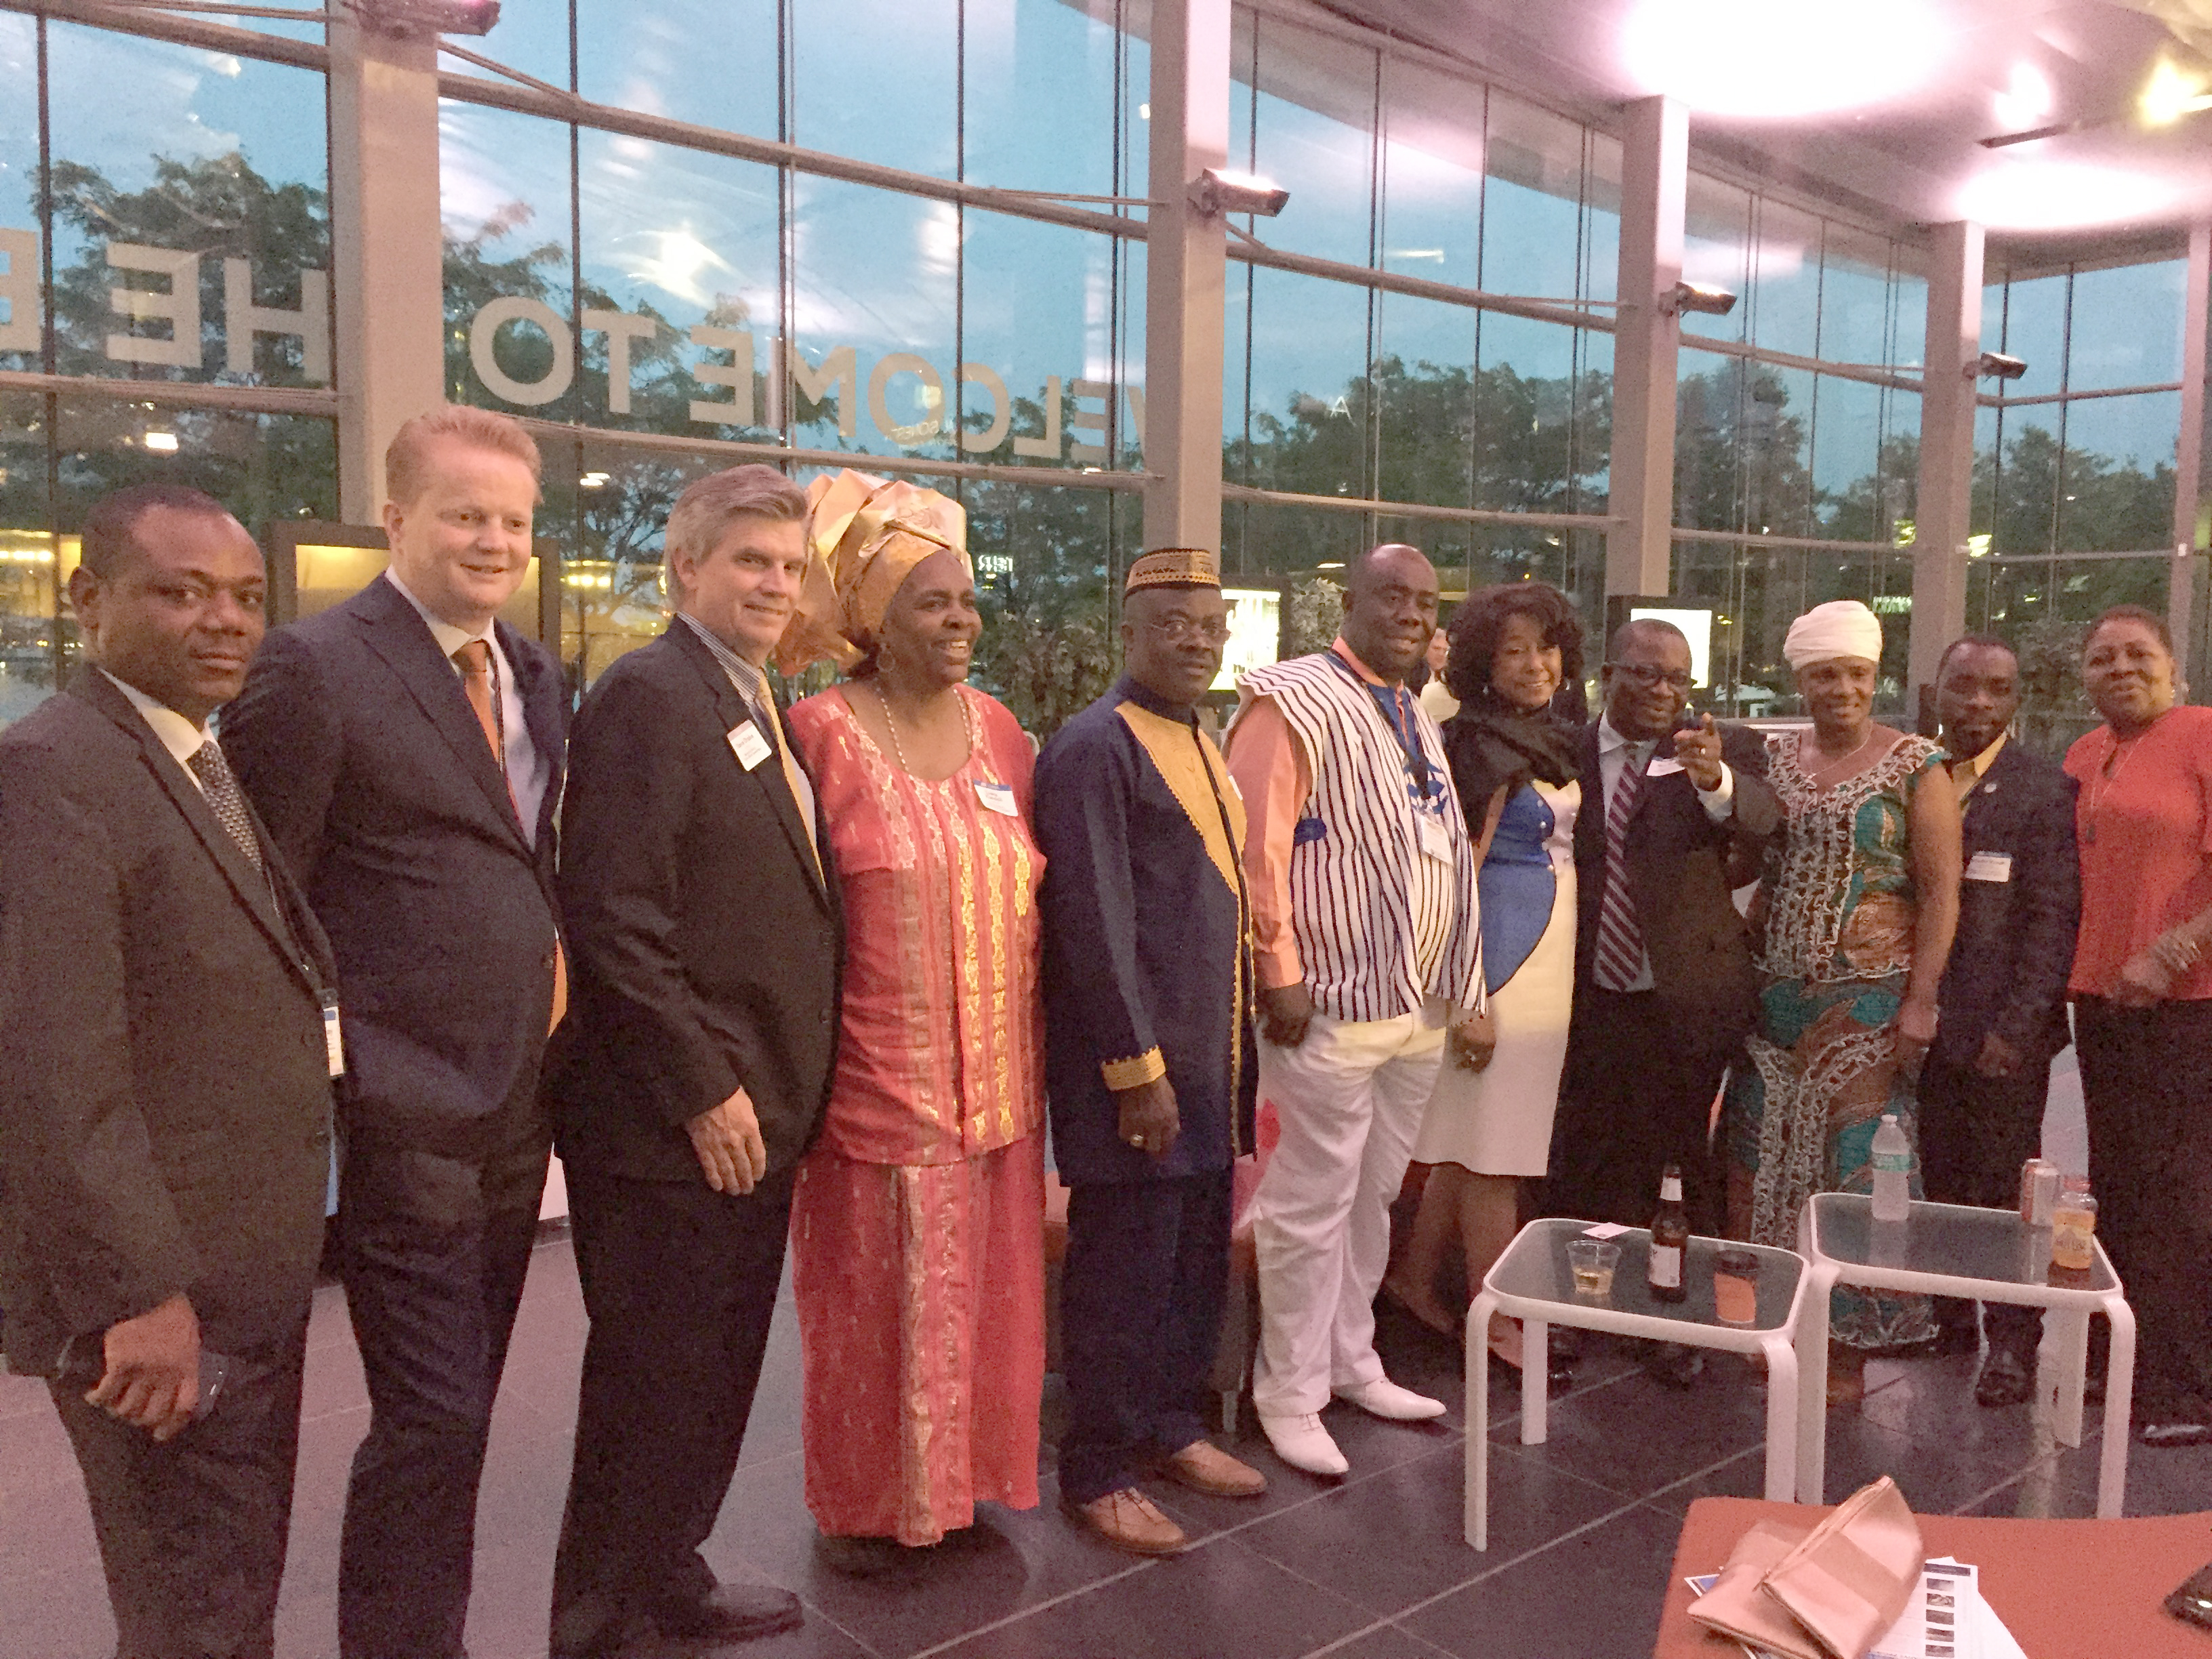 International Sister Port Reception 2018-05-17: Liberia delegation, Alan Dirks from Port of Rotterdam, and others